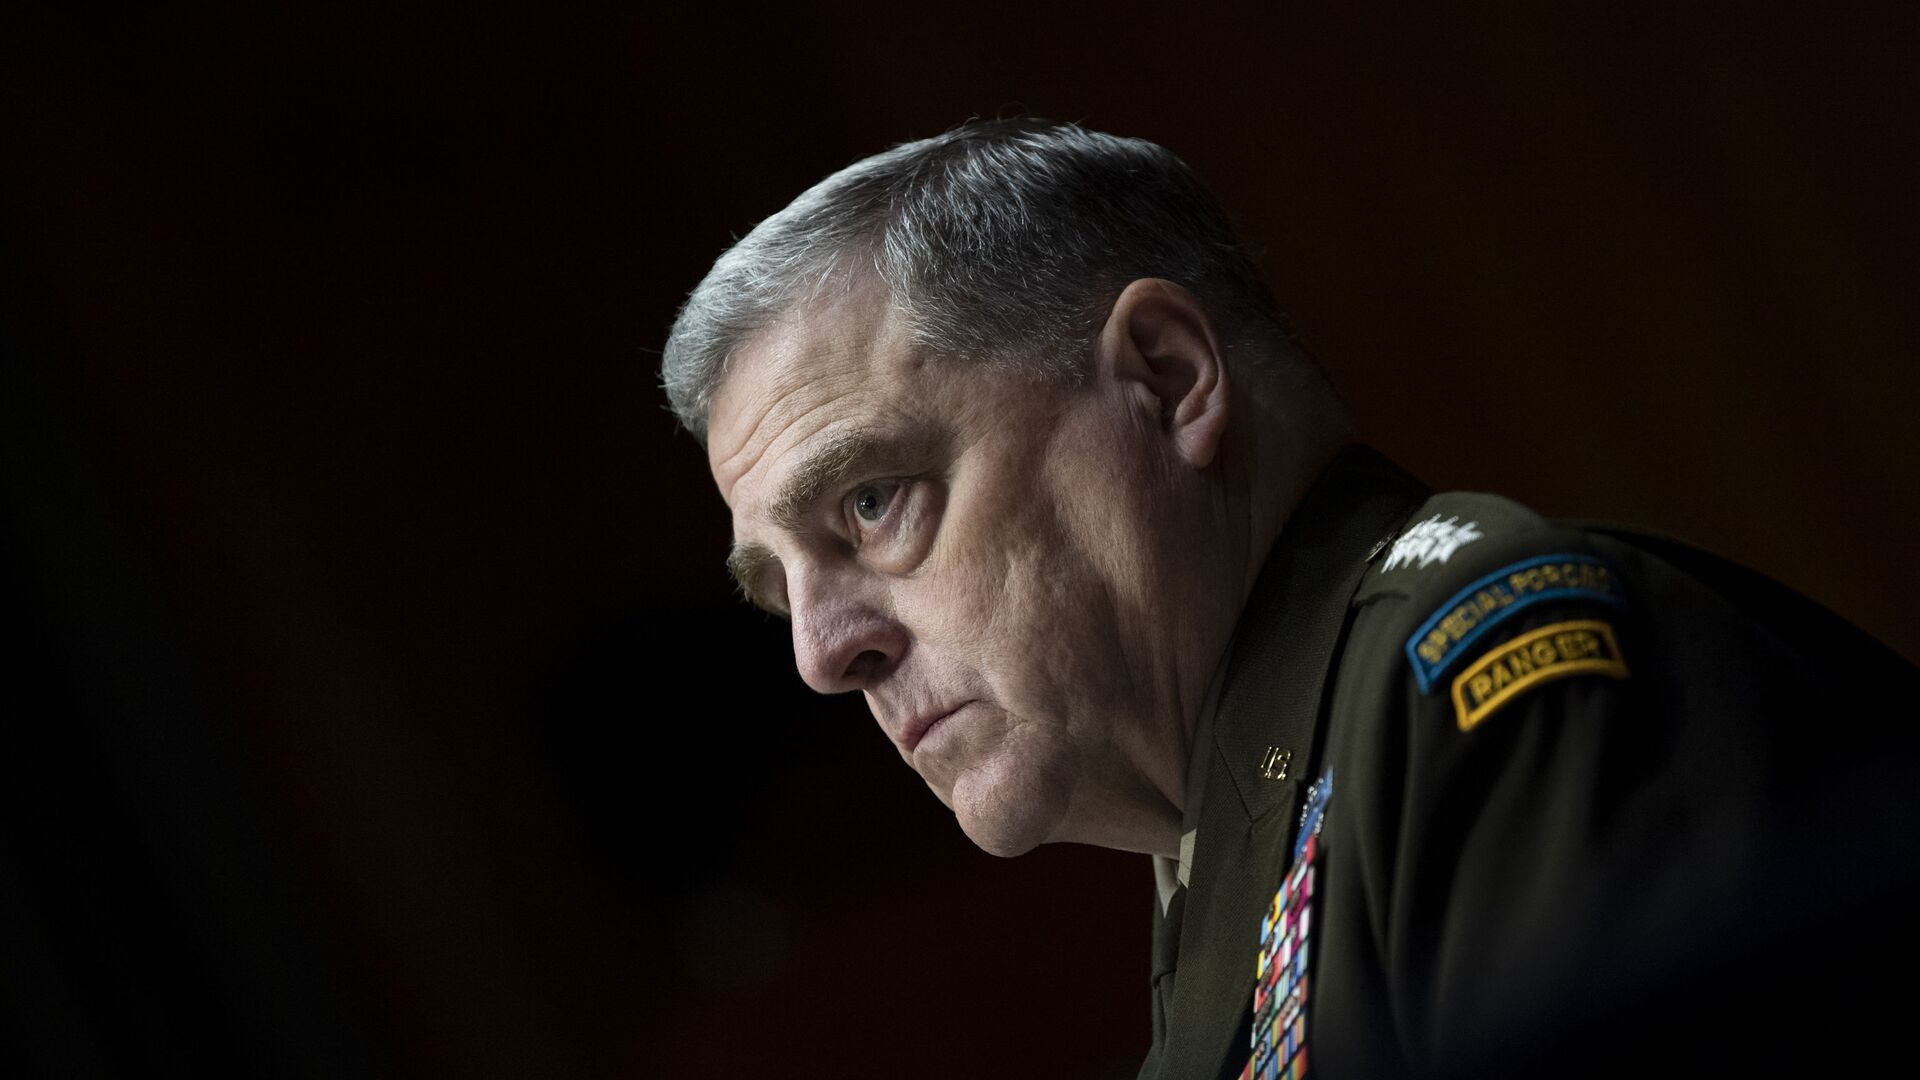 Chairman of the Joint Chiefs Chairman Gen. Mark Milley testifies before a Senate Appropriations Committee hearing to examine proposed budget estimates and justification for fiscal year 2022 for the Department of Defense in Washington on Thursday, June 17, 2021. - Sputnik International, 1920, 14.09.2021